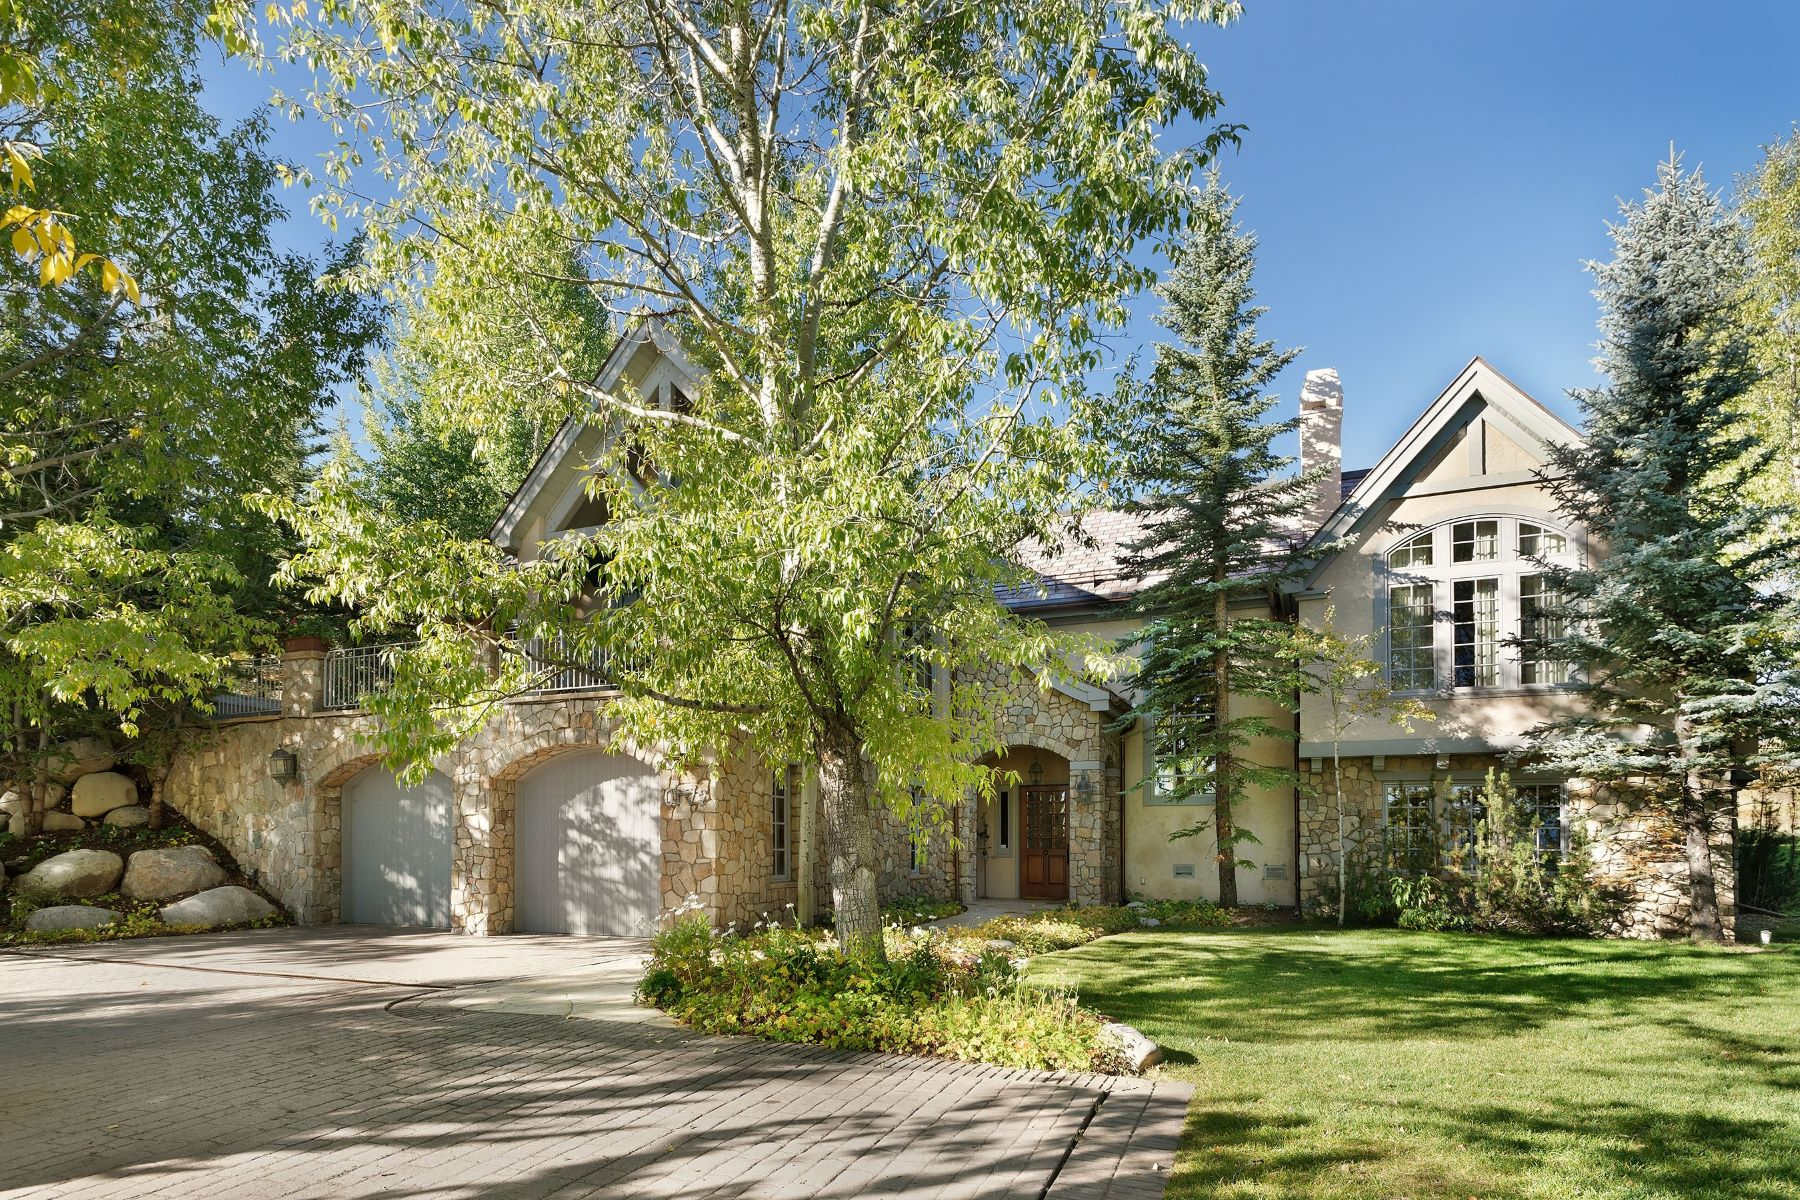 Single Family Home for Sale at Snowmass Village Retreat 179 Divide Drive Snowmass Village, Colorado 81615 United States